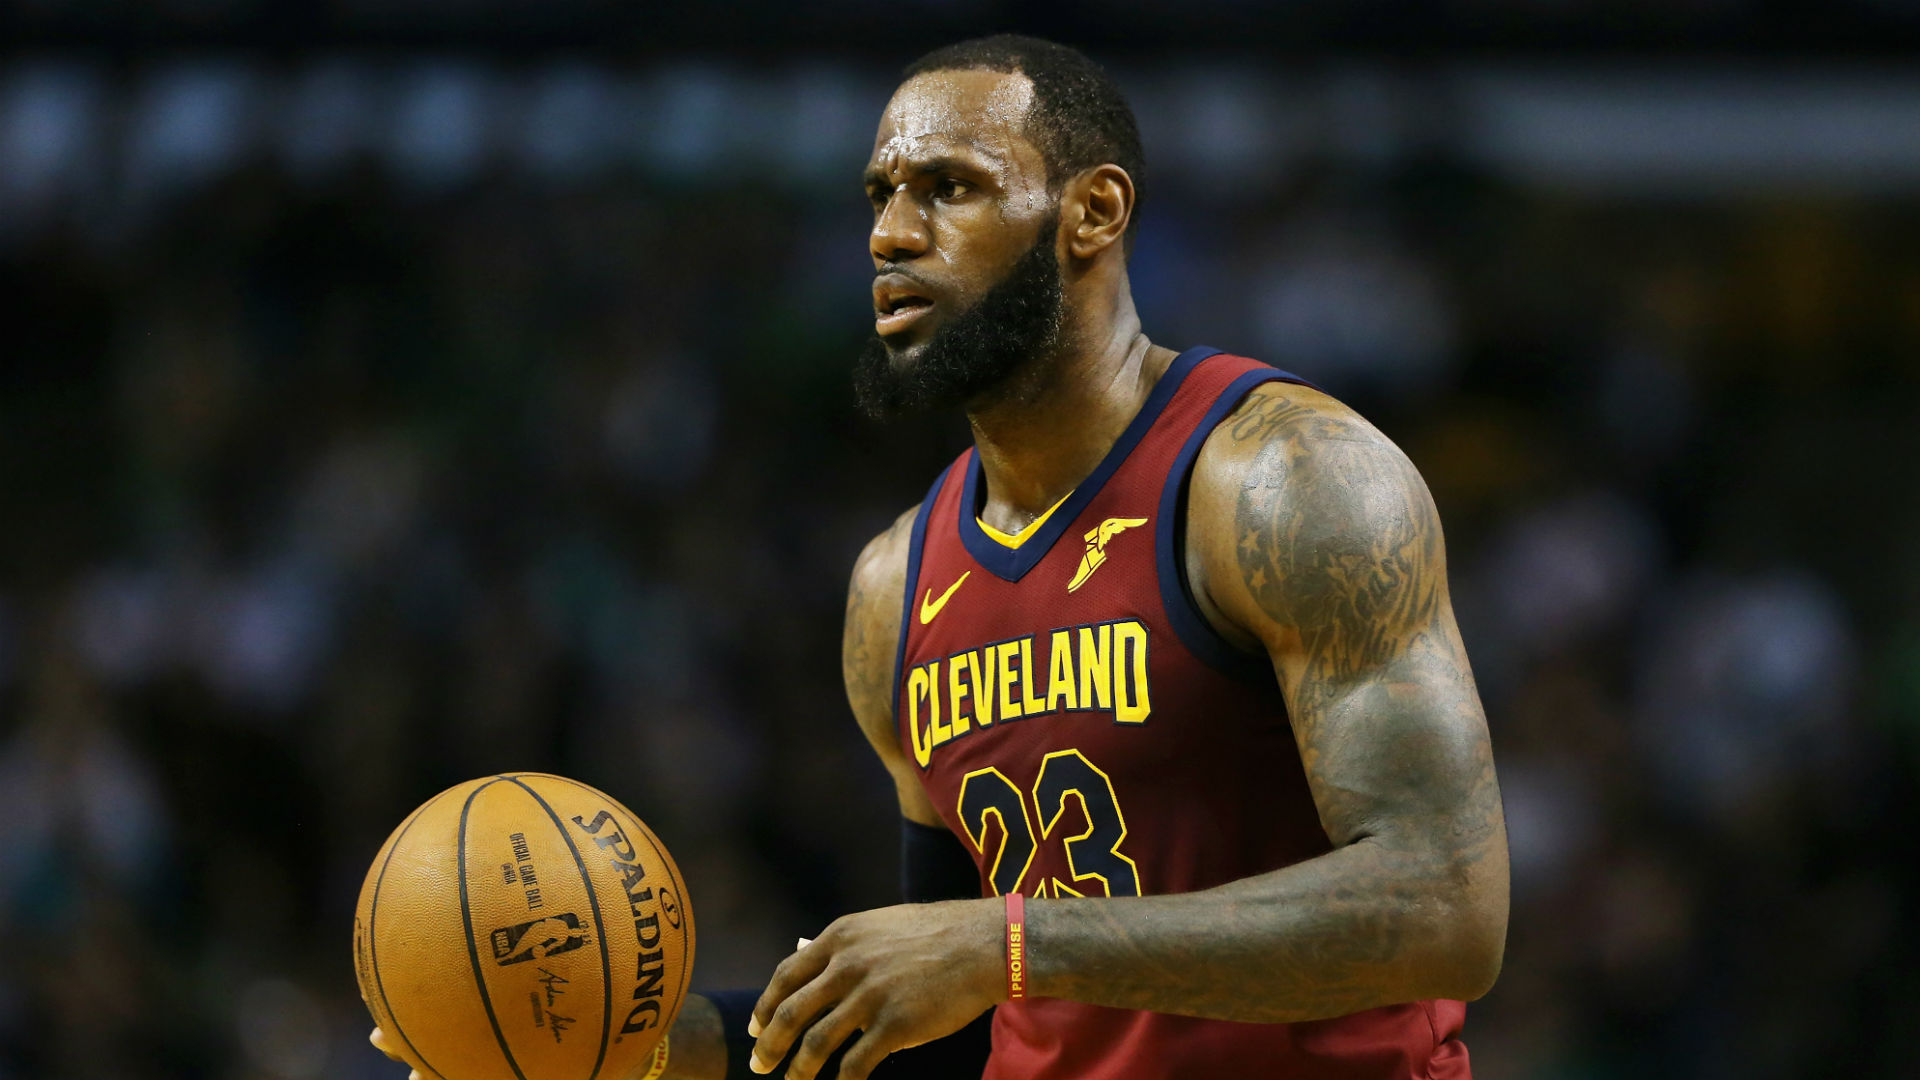 Inside 'The Decision Cave' where LeBron James is reportedly mulling his future